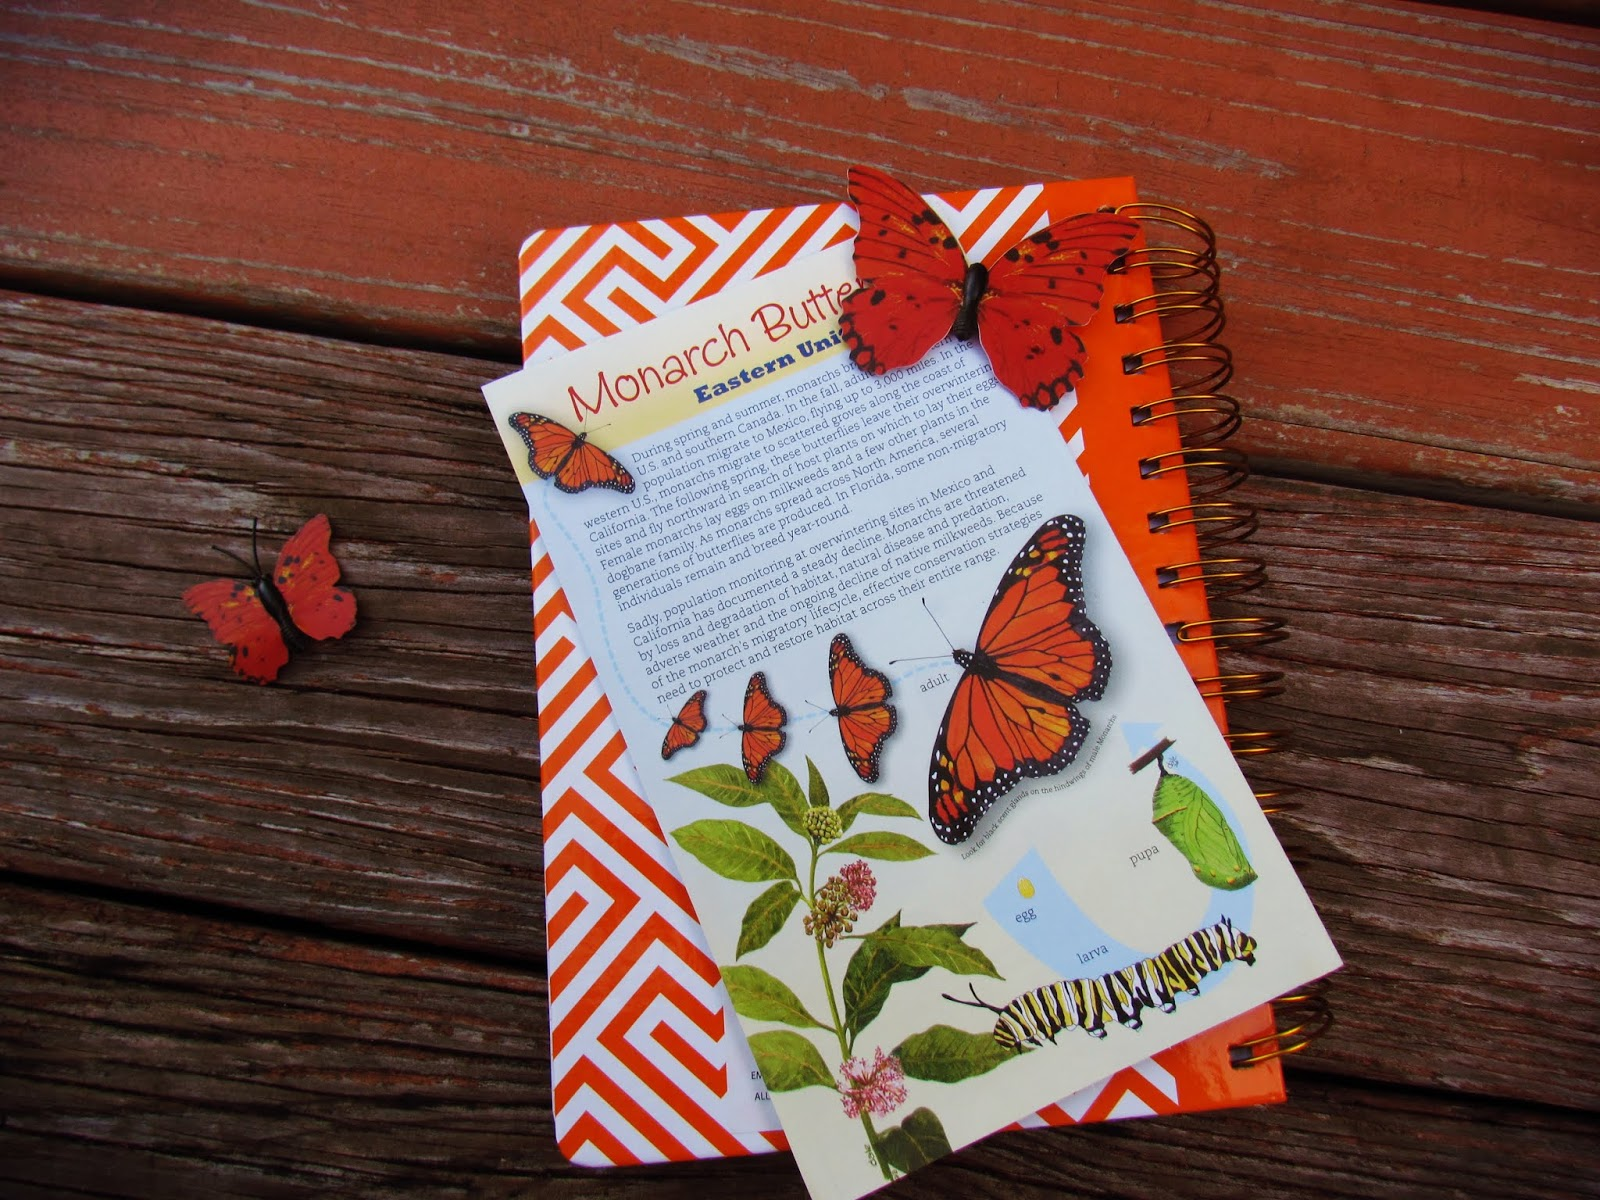 A butterfly flat lay with butterfly garden pamphlet, orange chevron notebook, and butterfly magnets on a wooden plank background